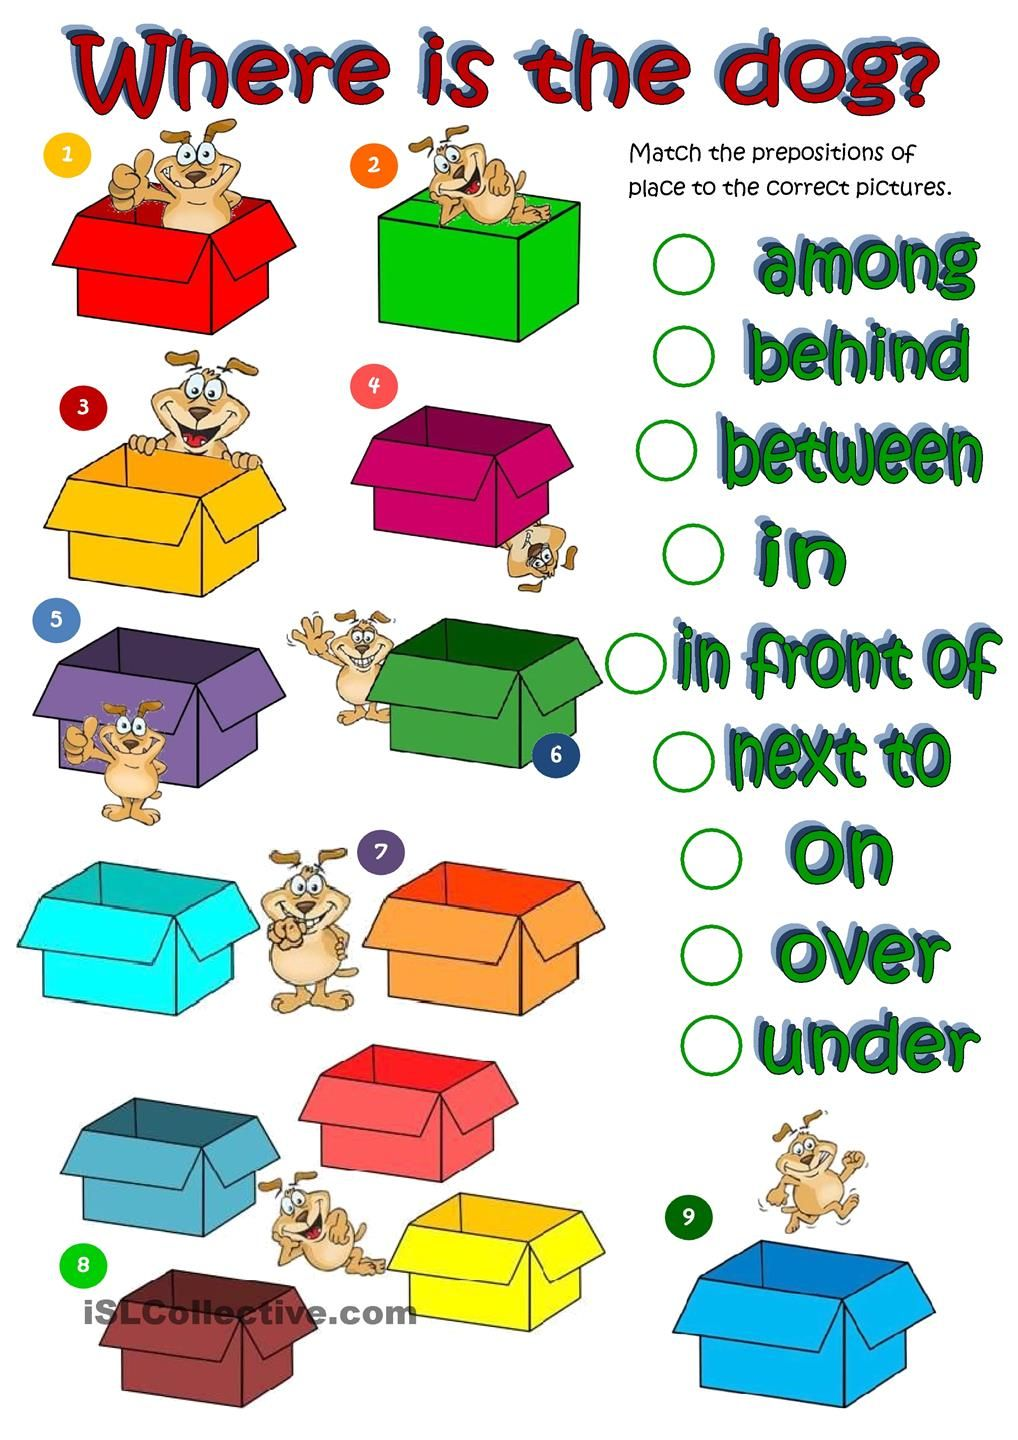 Worksheets Pic On Preposition wheres the dog prepositions of place worksheet free esl printable worksheets made by teachers